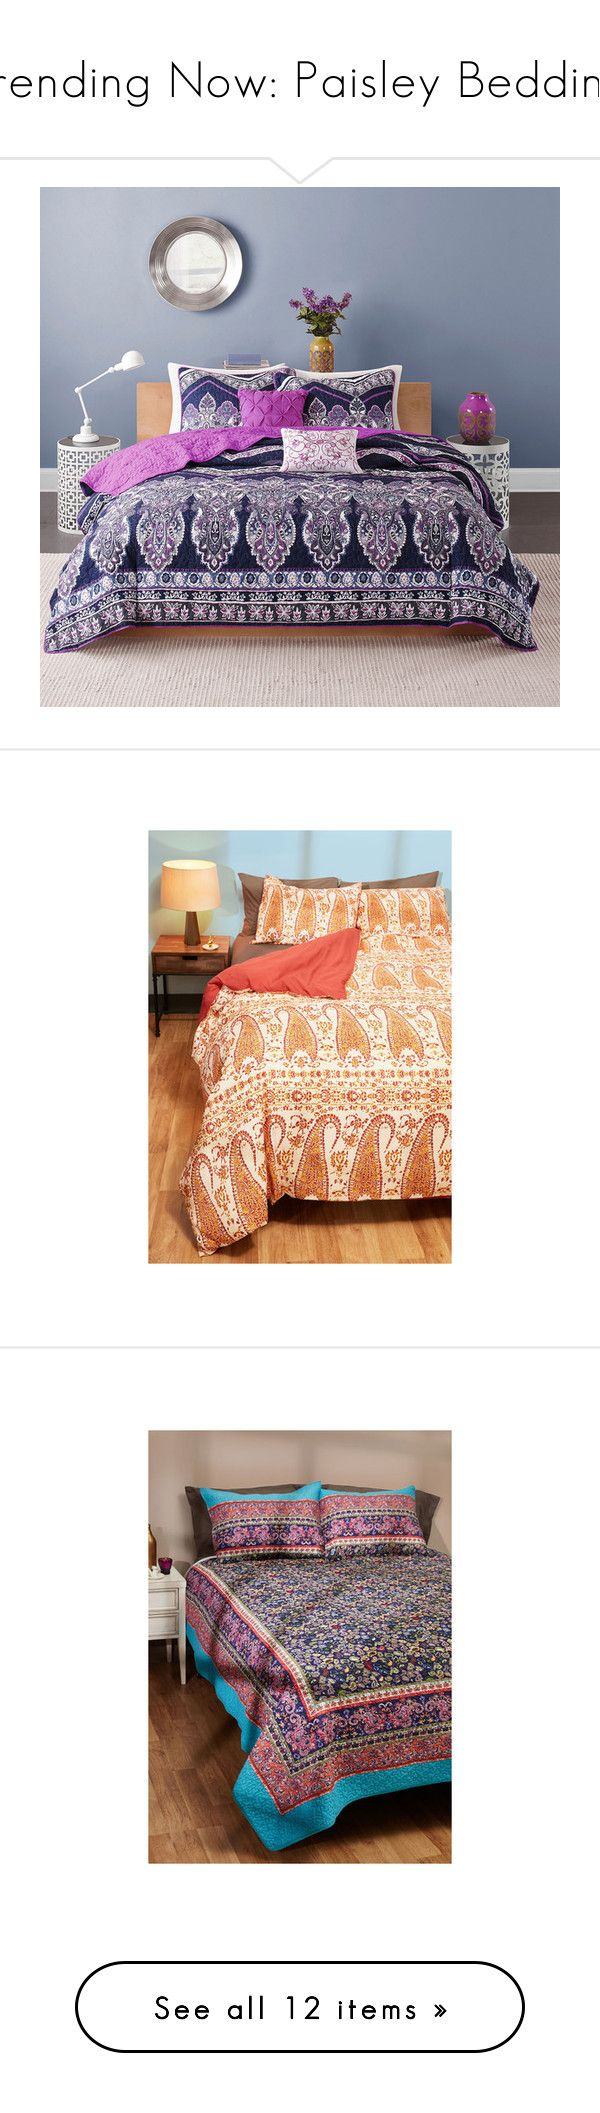 """Trending Now: Paisley Bedding"" by polyvore-editorial ❤ liked on Polyvore featuring paisleybedding, home, bed & bath, bedding, quilts, twin xl bedding, paisley bedding, floral pillow shams, twin coverlet set and chevron twin bedding"